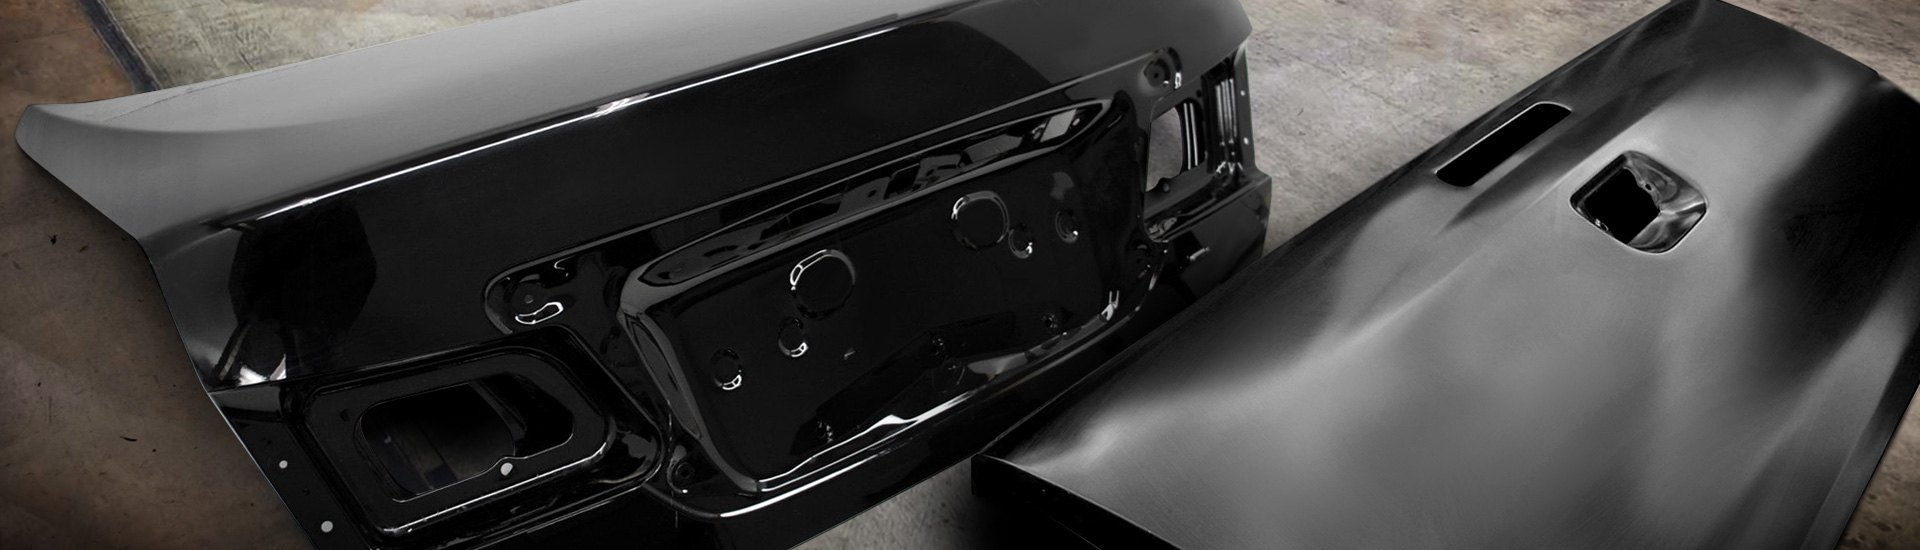 replacement trunks tailgates components at carid com